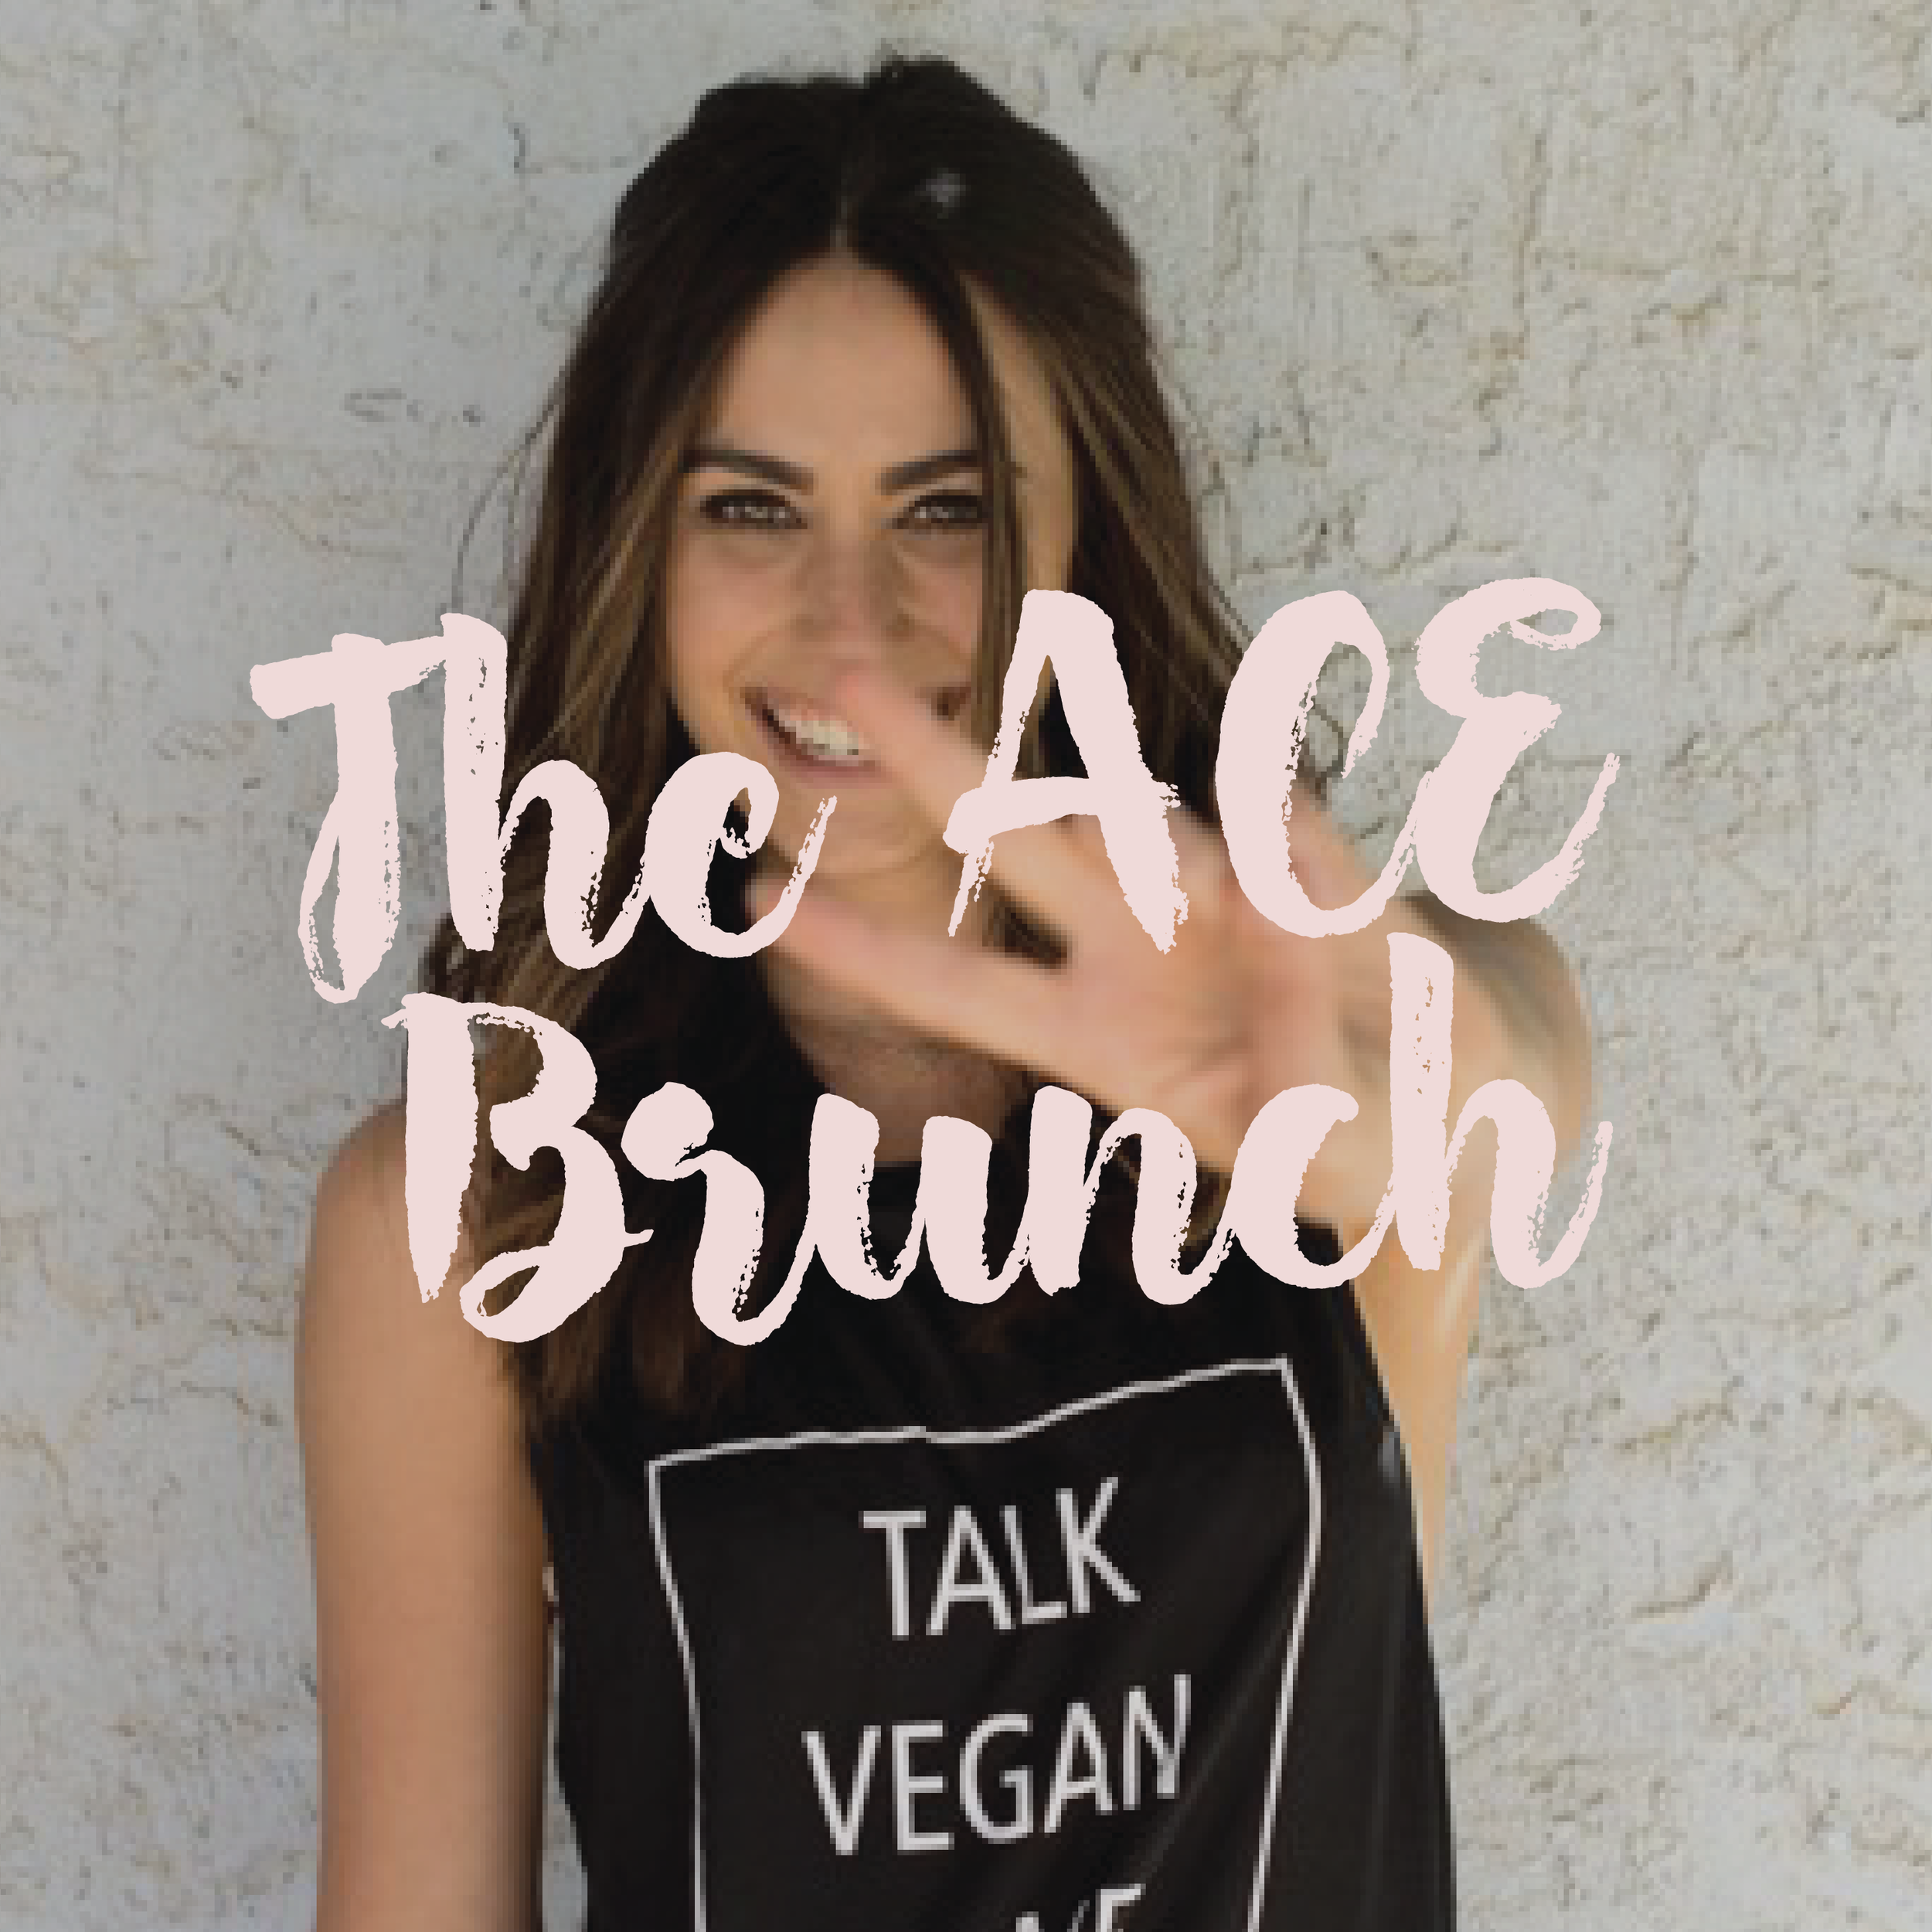 ace-babes-who-brunch